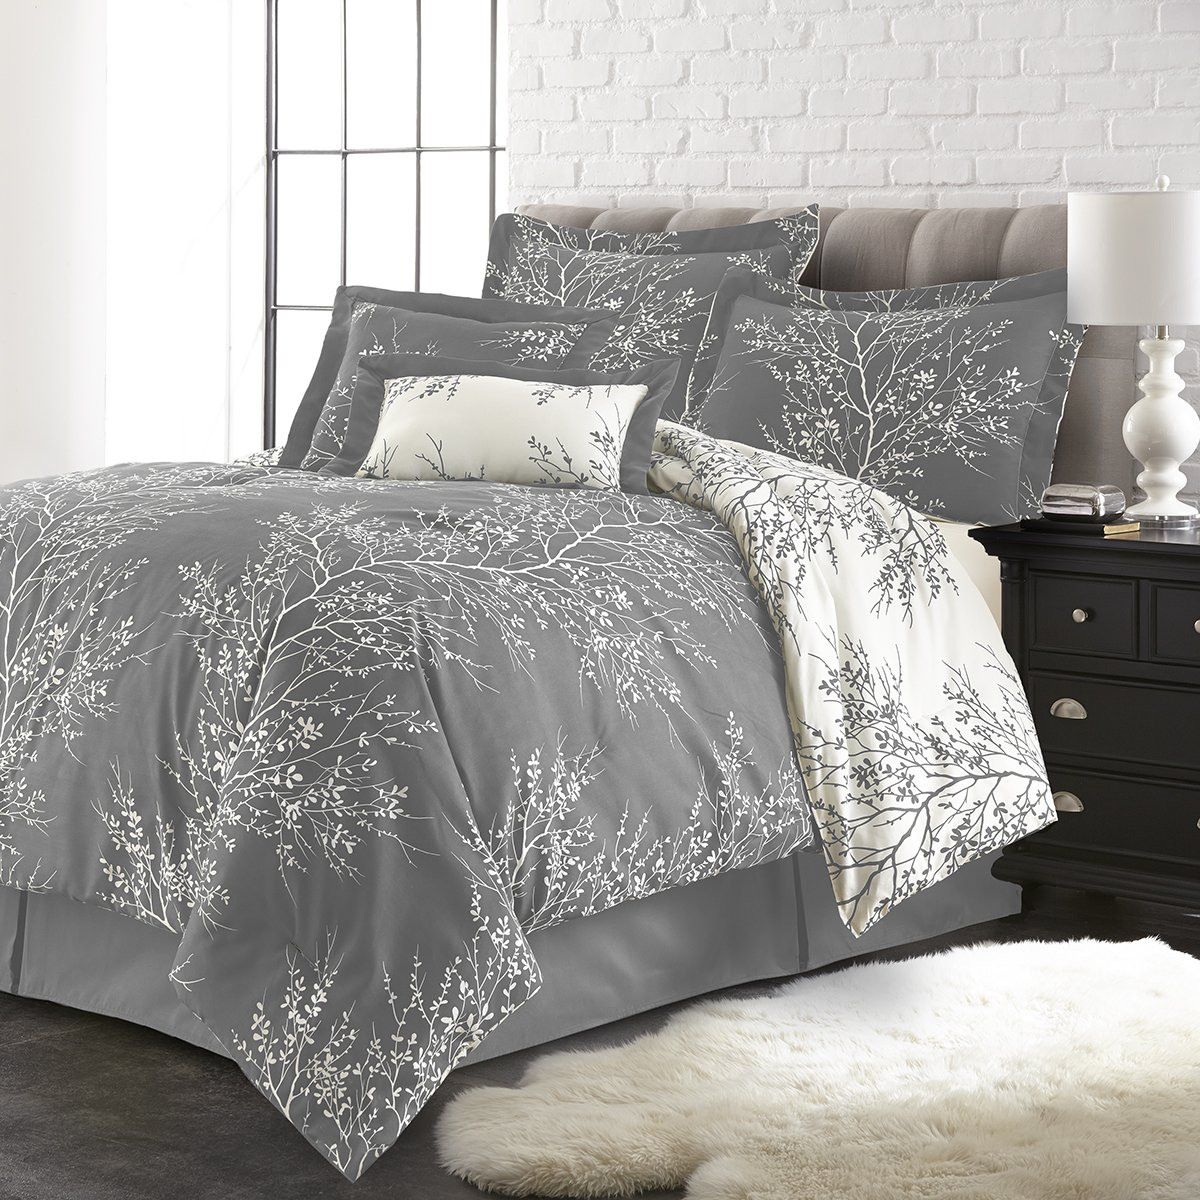 Spirit Linen, Inc Hotel 5th Ave 6PCFOLCOMF-Gwq Foliage Comforter Set